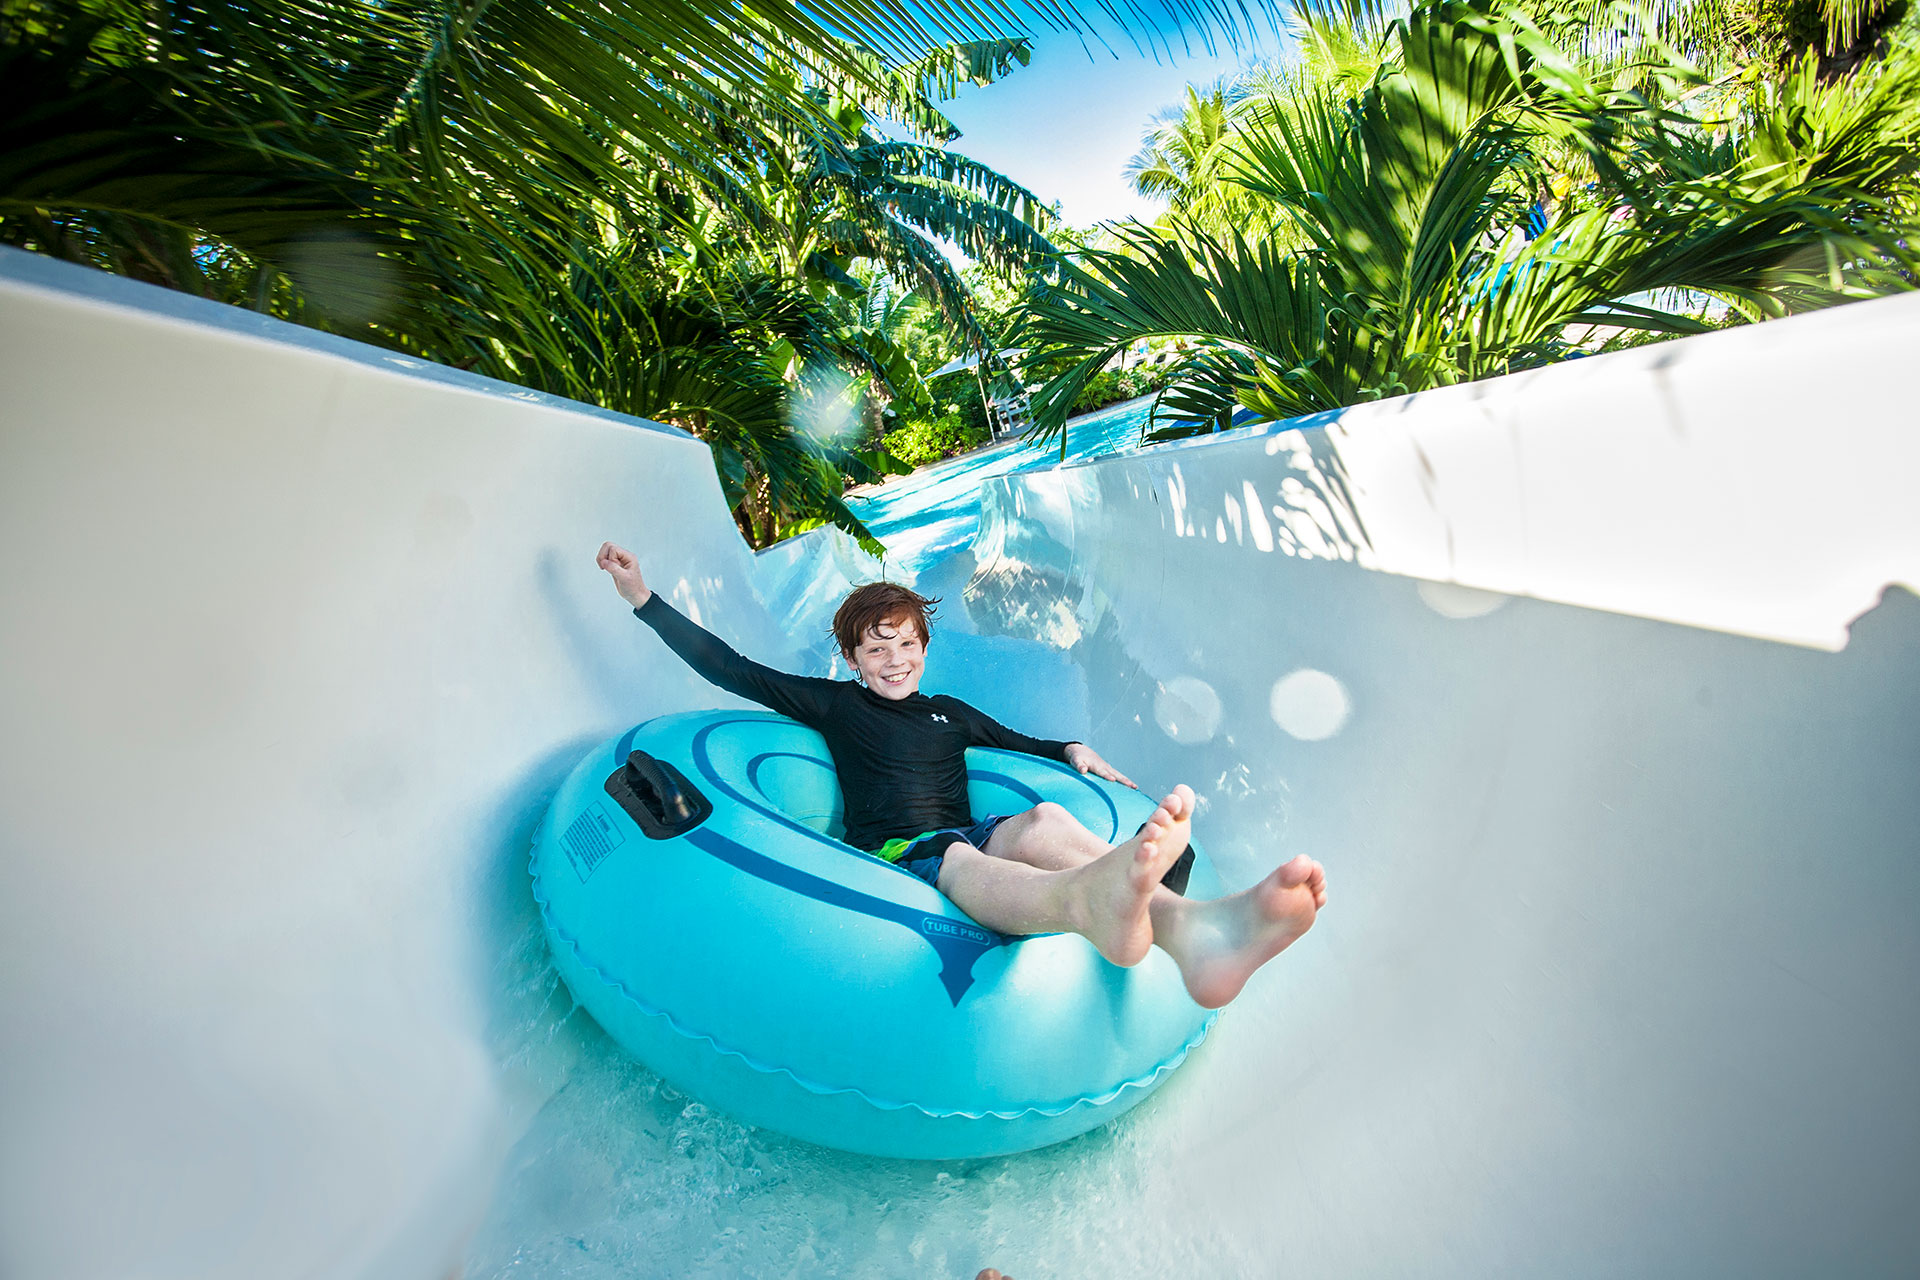 Boy on Waterslide at Beaches Turks and Caicos; Courtesy of Beaches Turks and Caicos